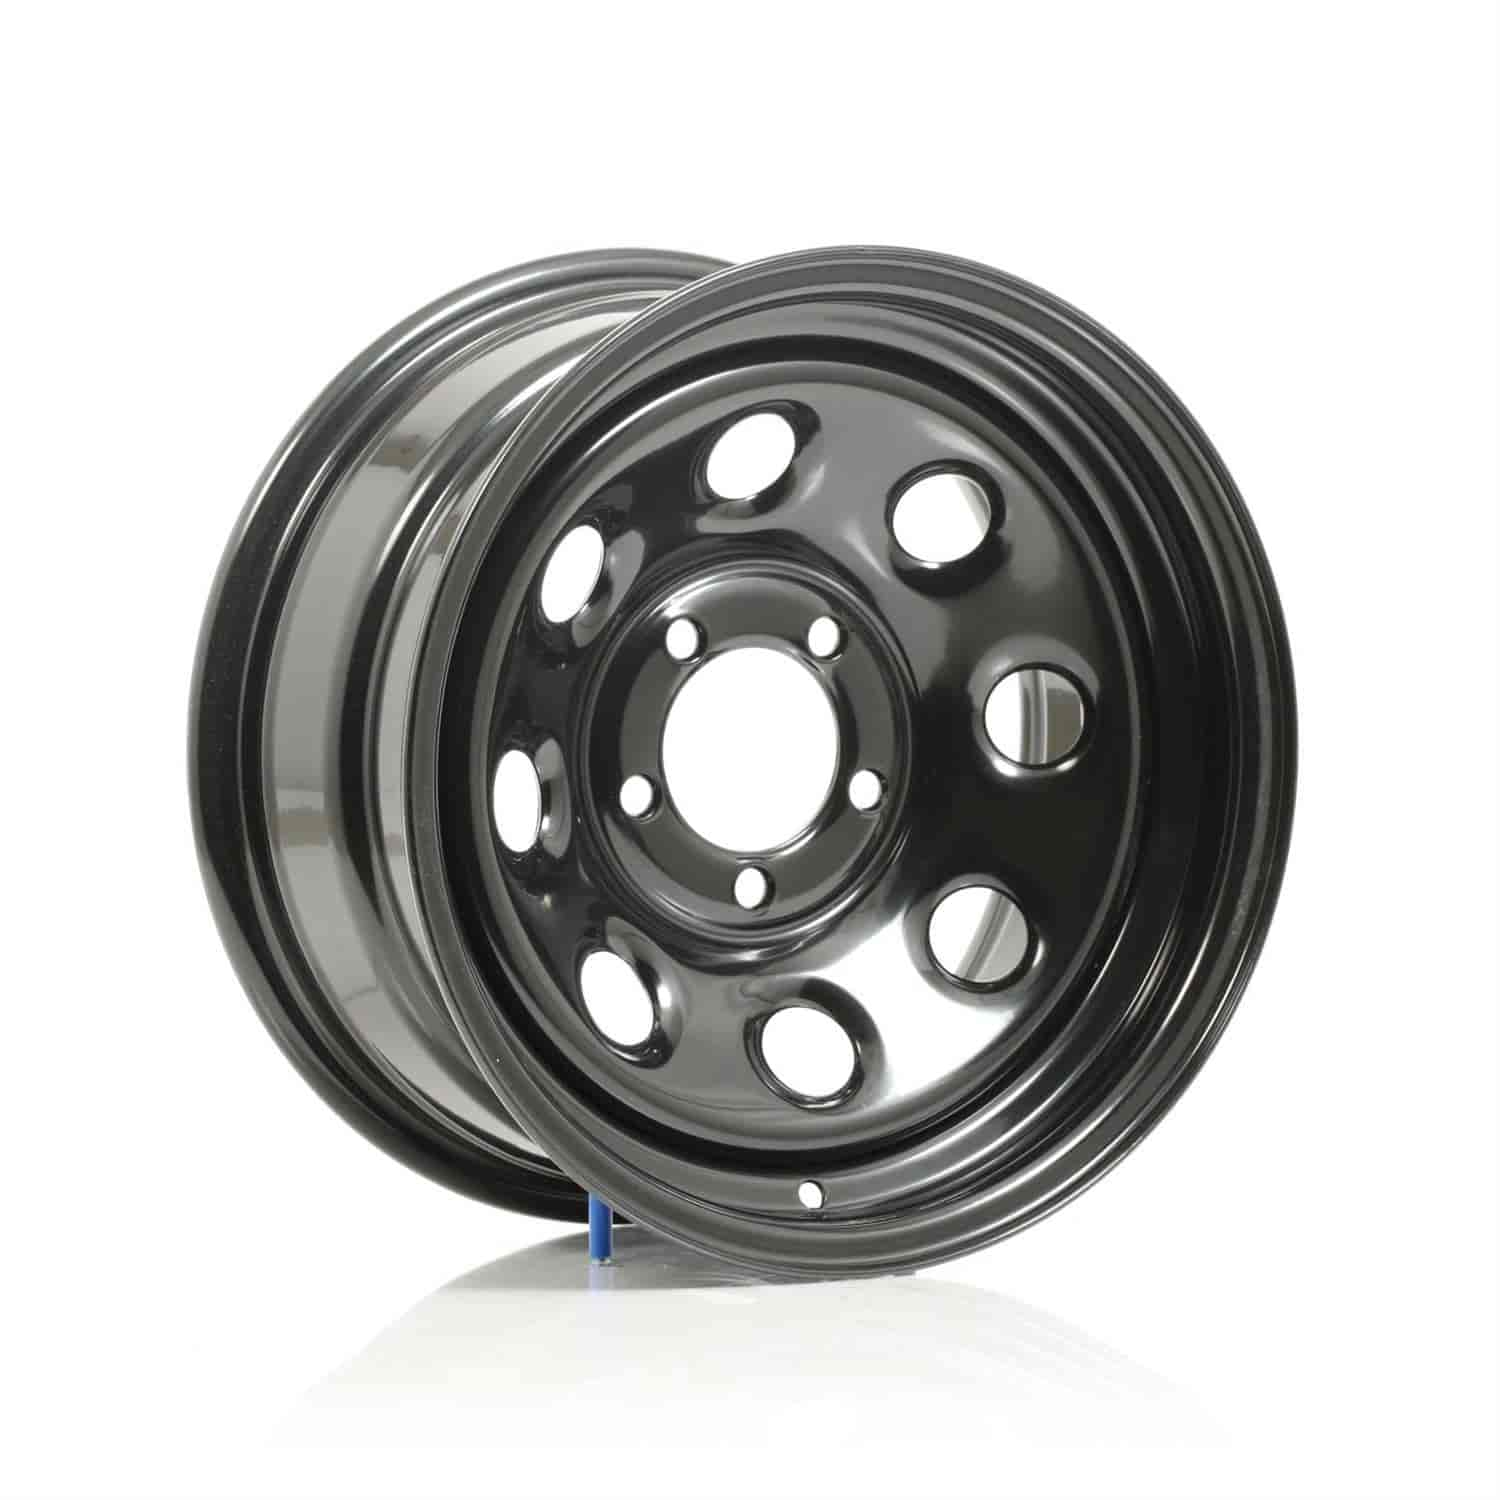 Cragar 3975834 - Cragar Black Soft 8 Wheels